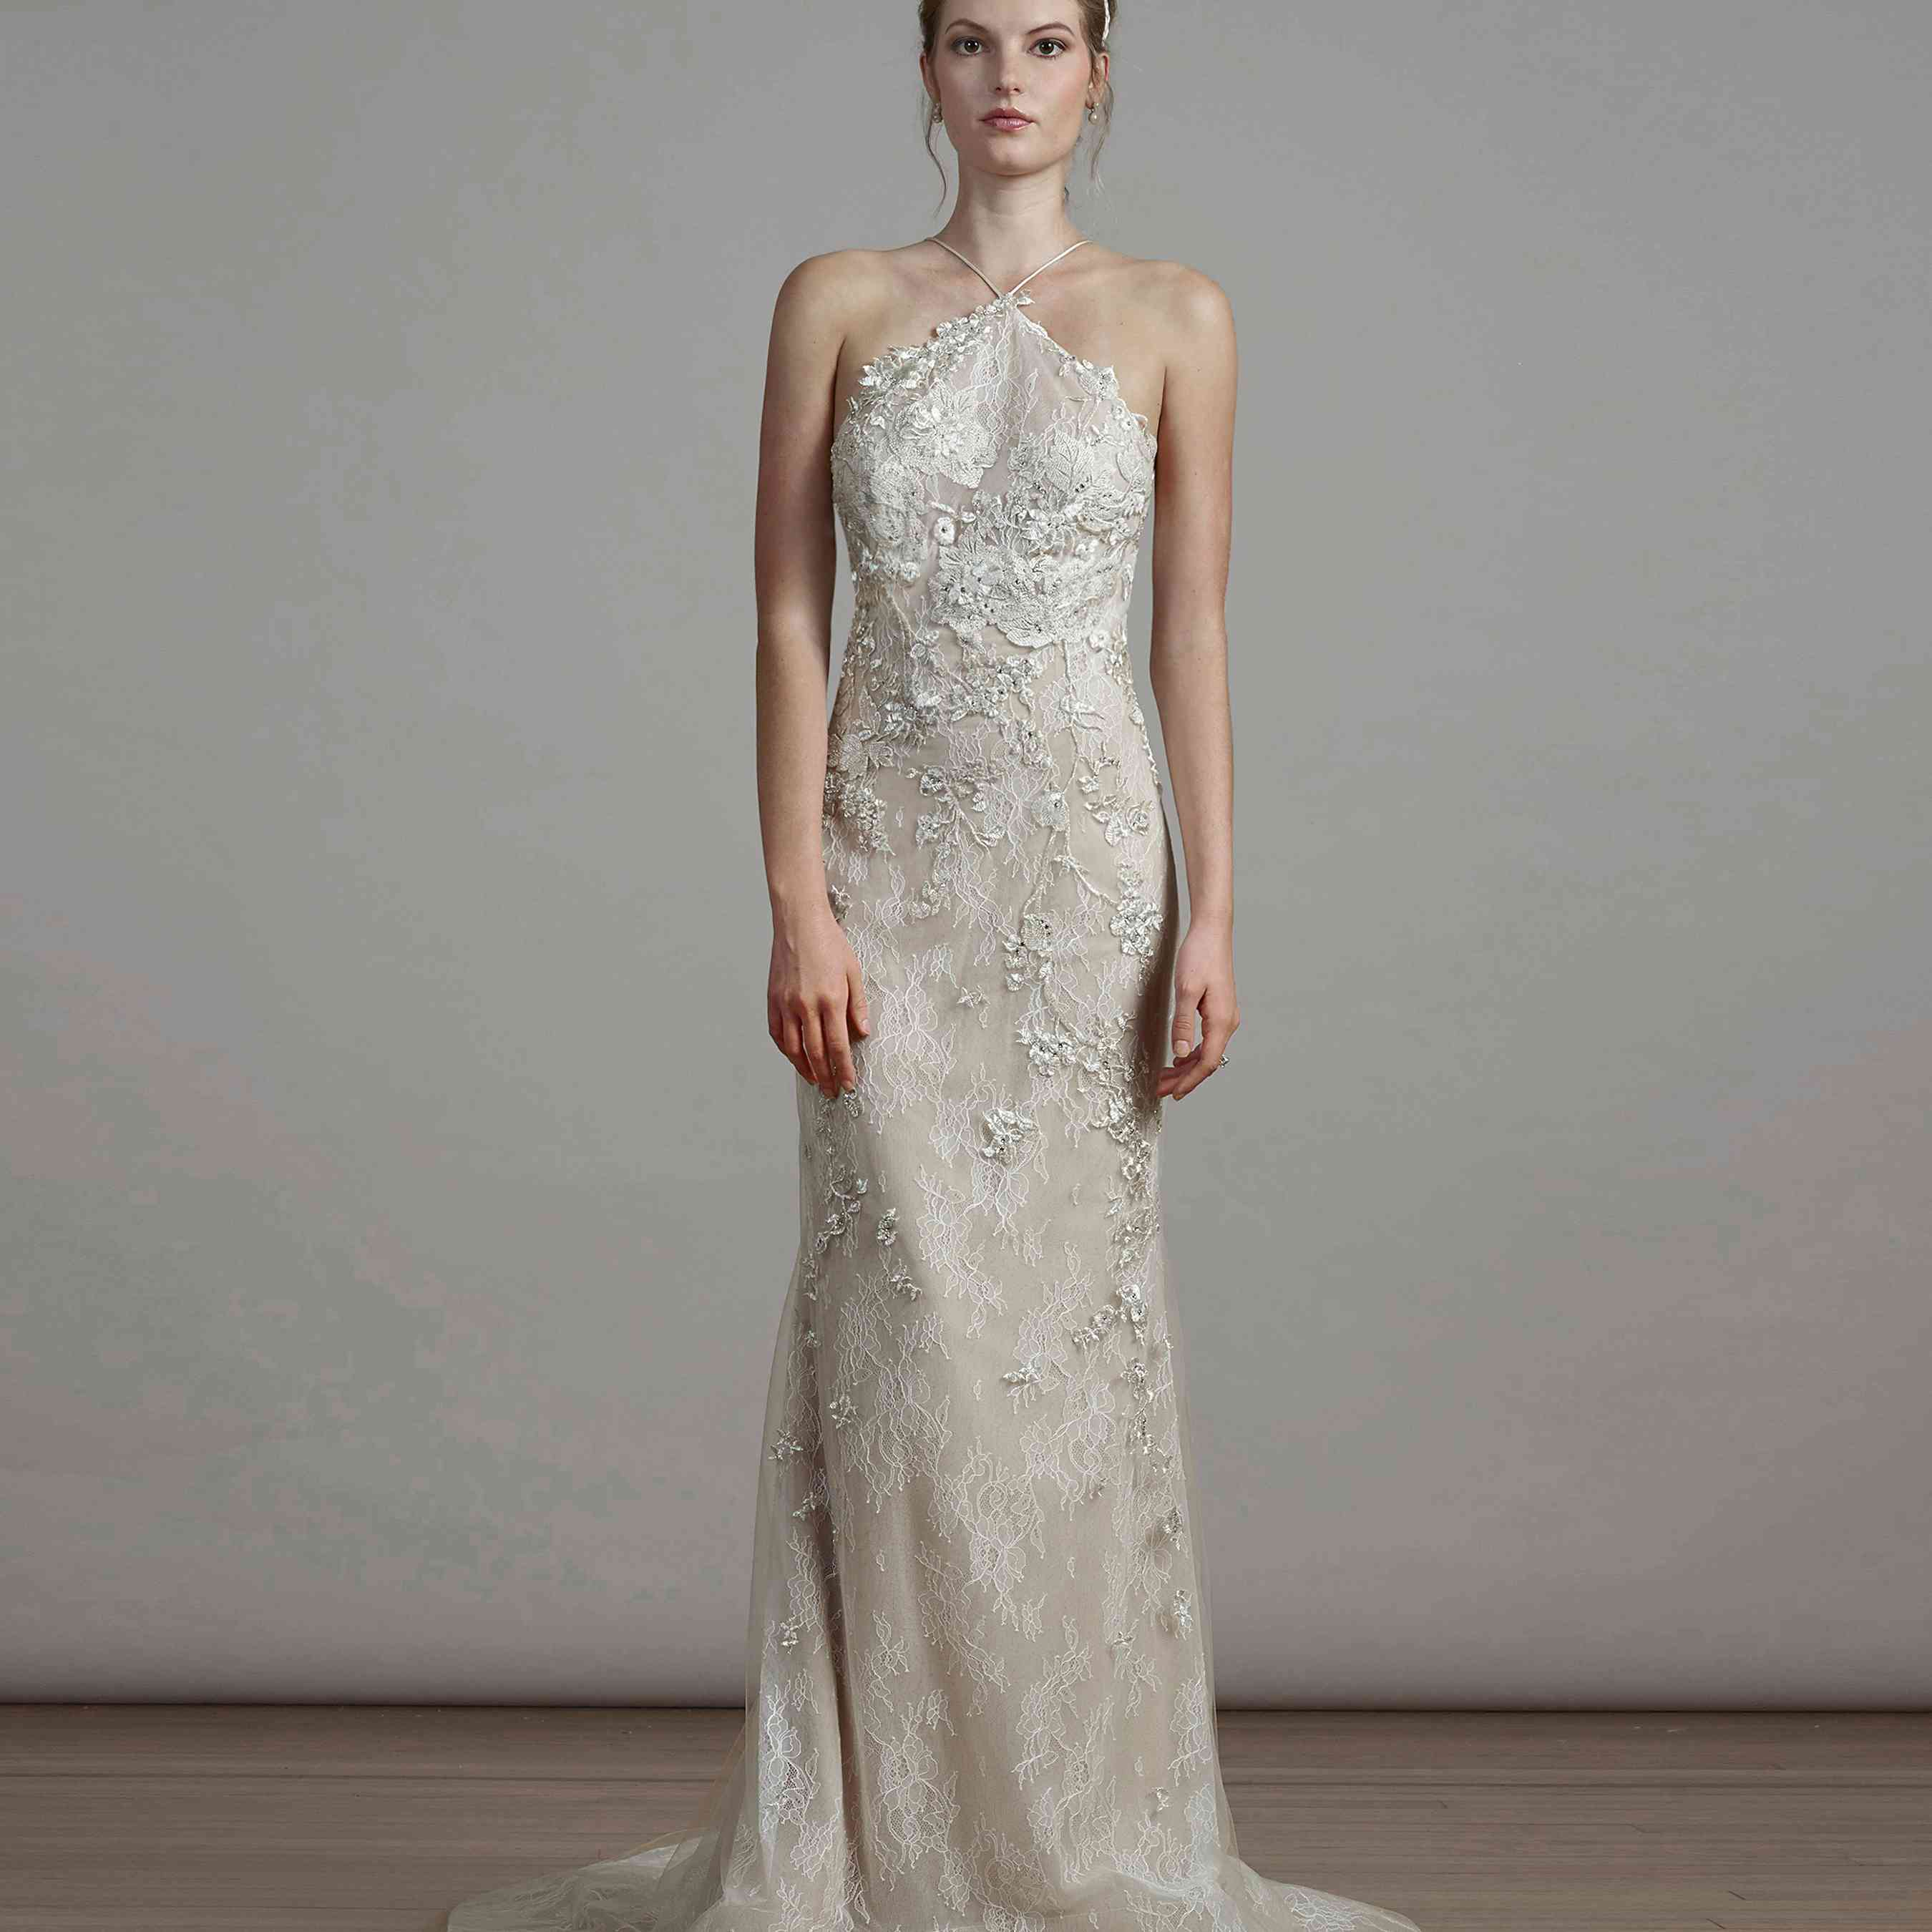 Petite Gowns For Weddings: 100+ Wedding Dresses Perfect For Petite Figures